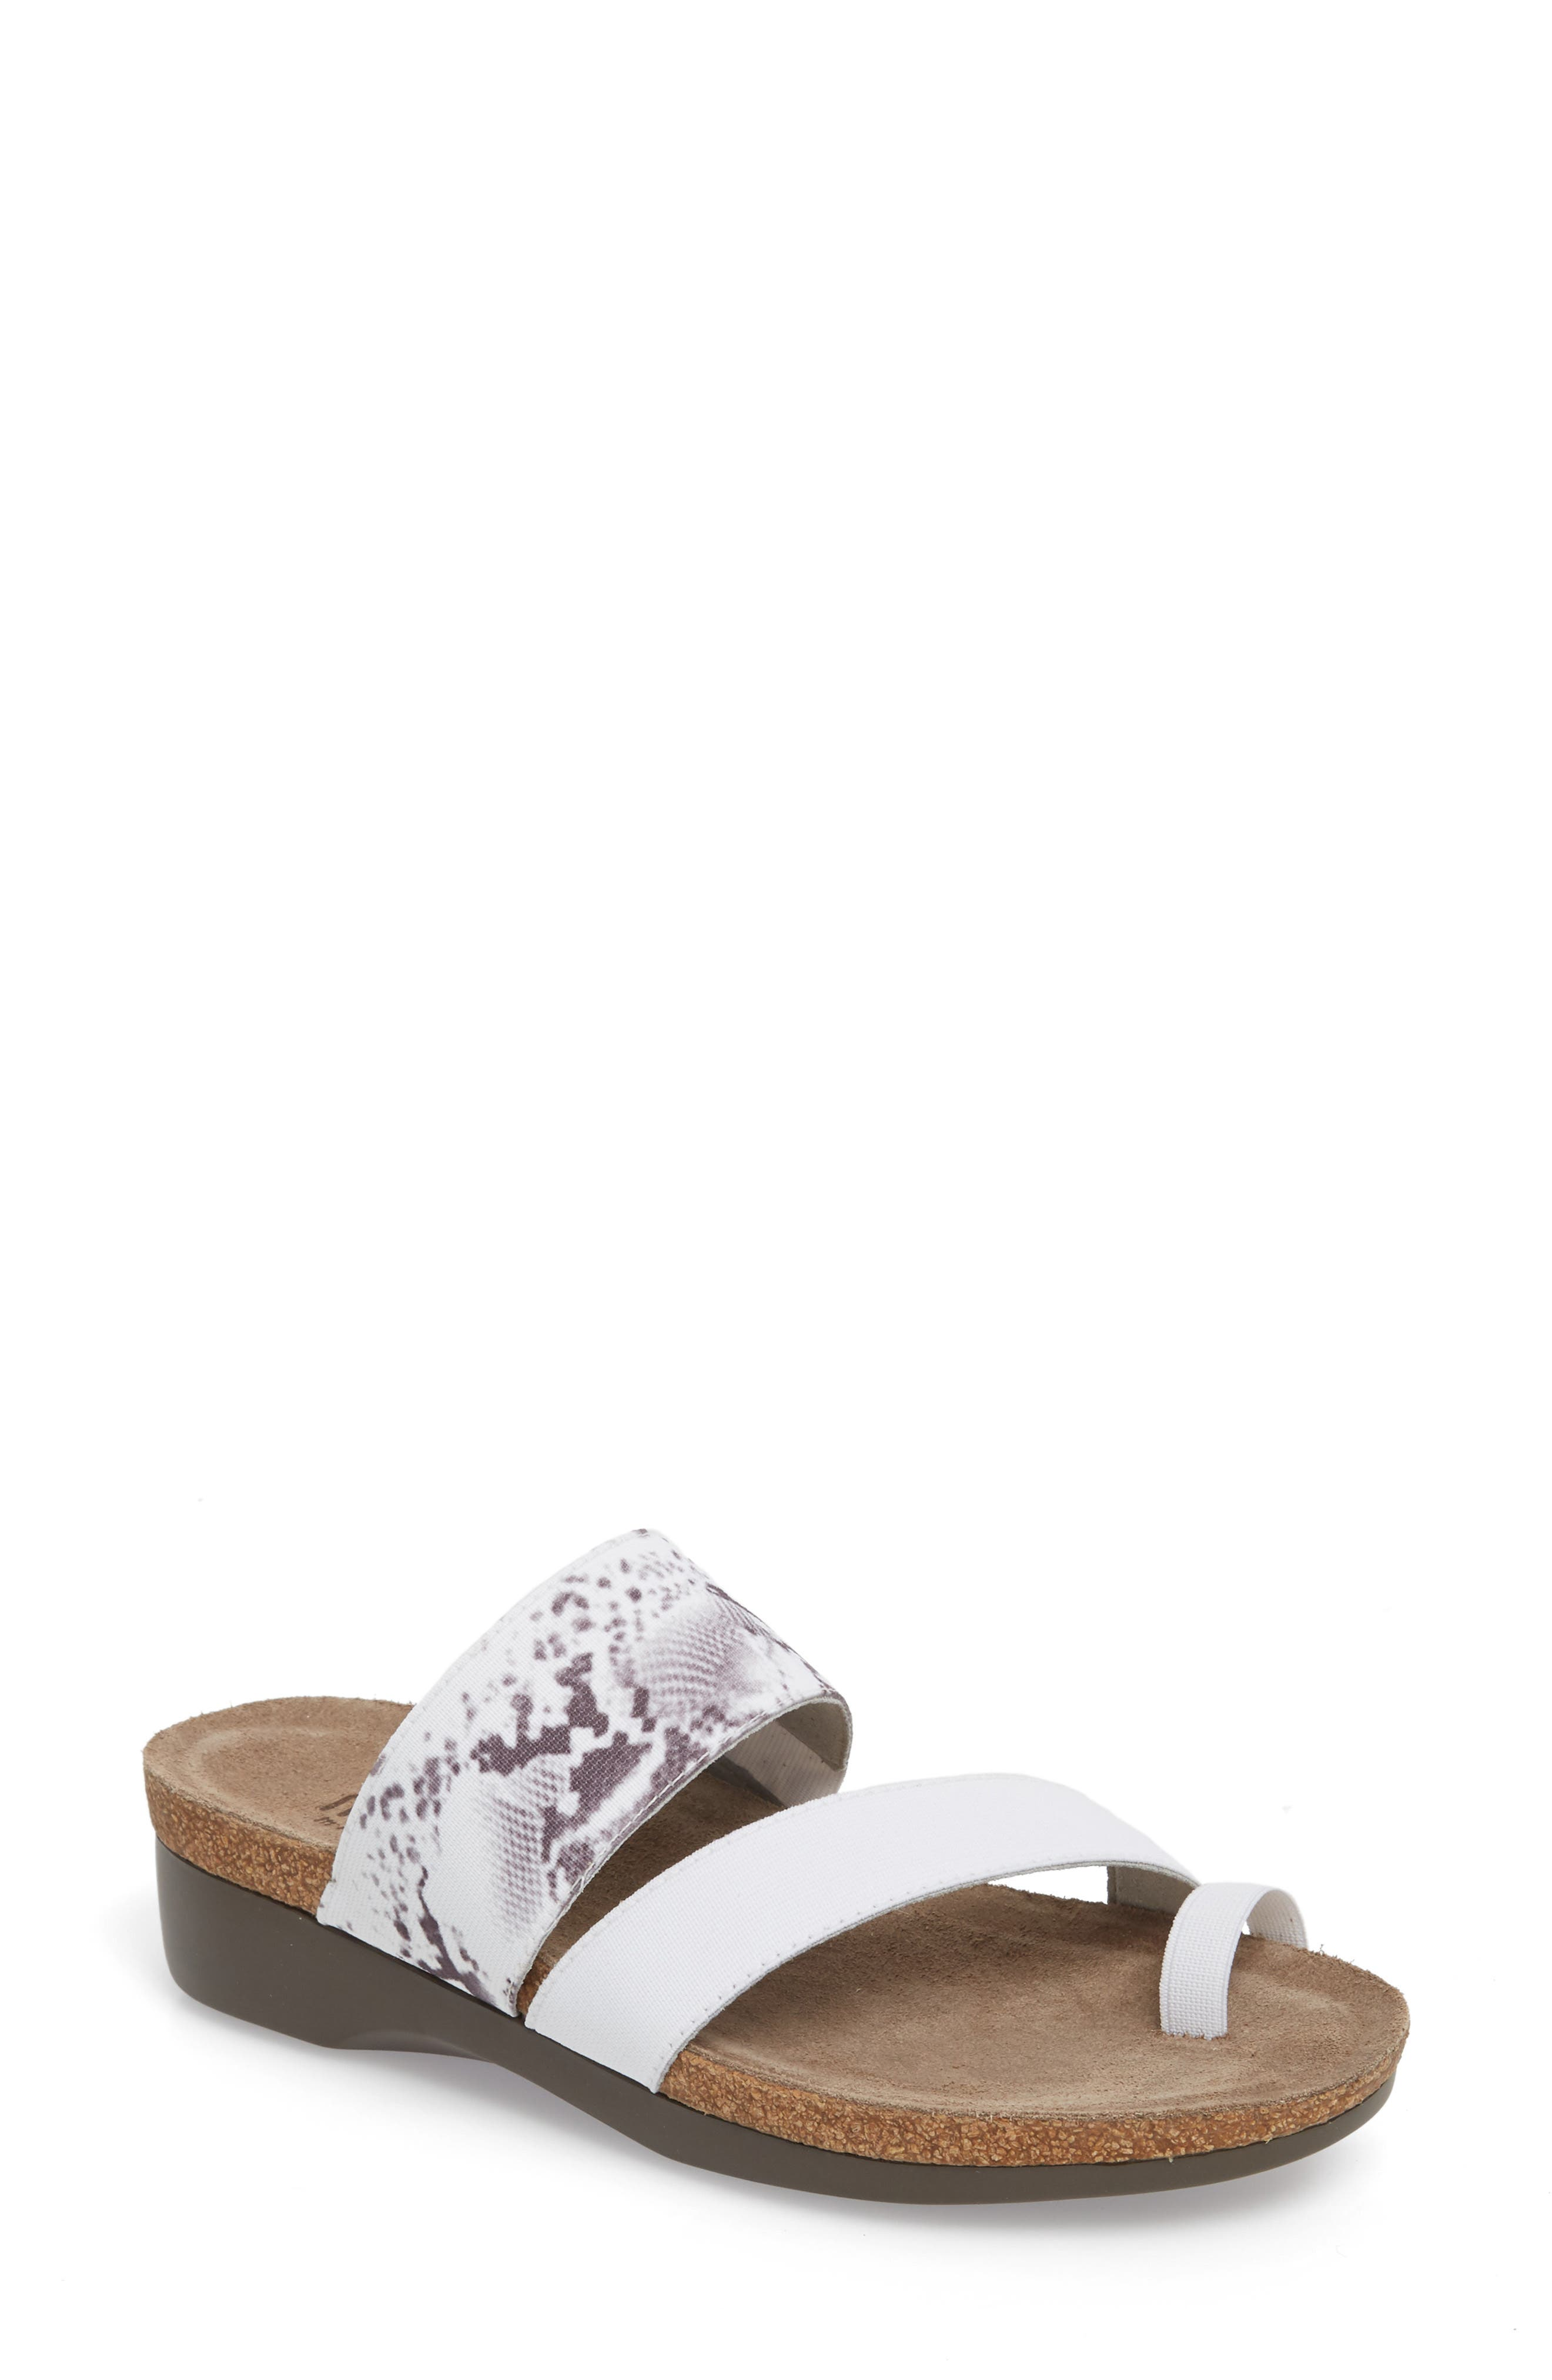 'Aries' Sandal,                         Main,                         color, White Snake Leather